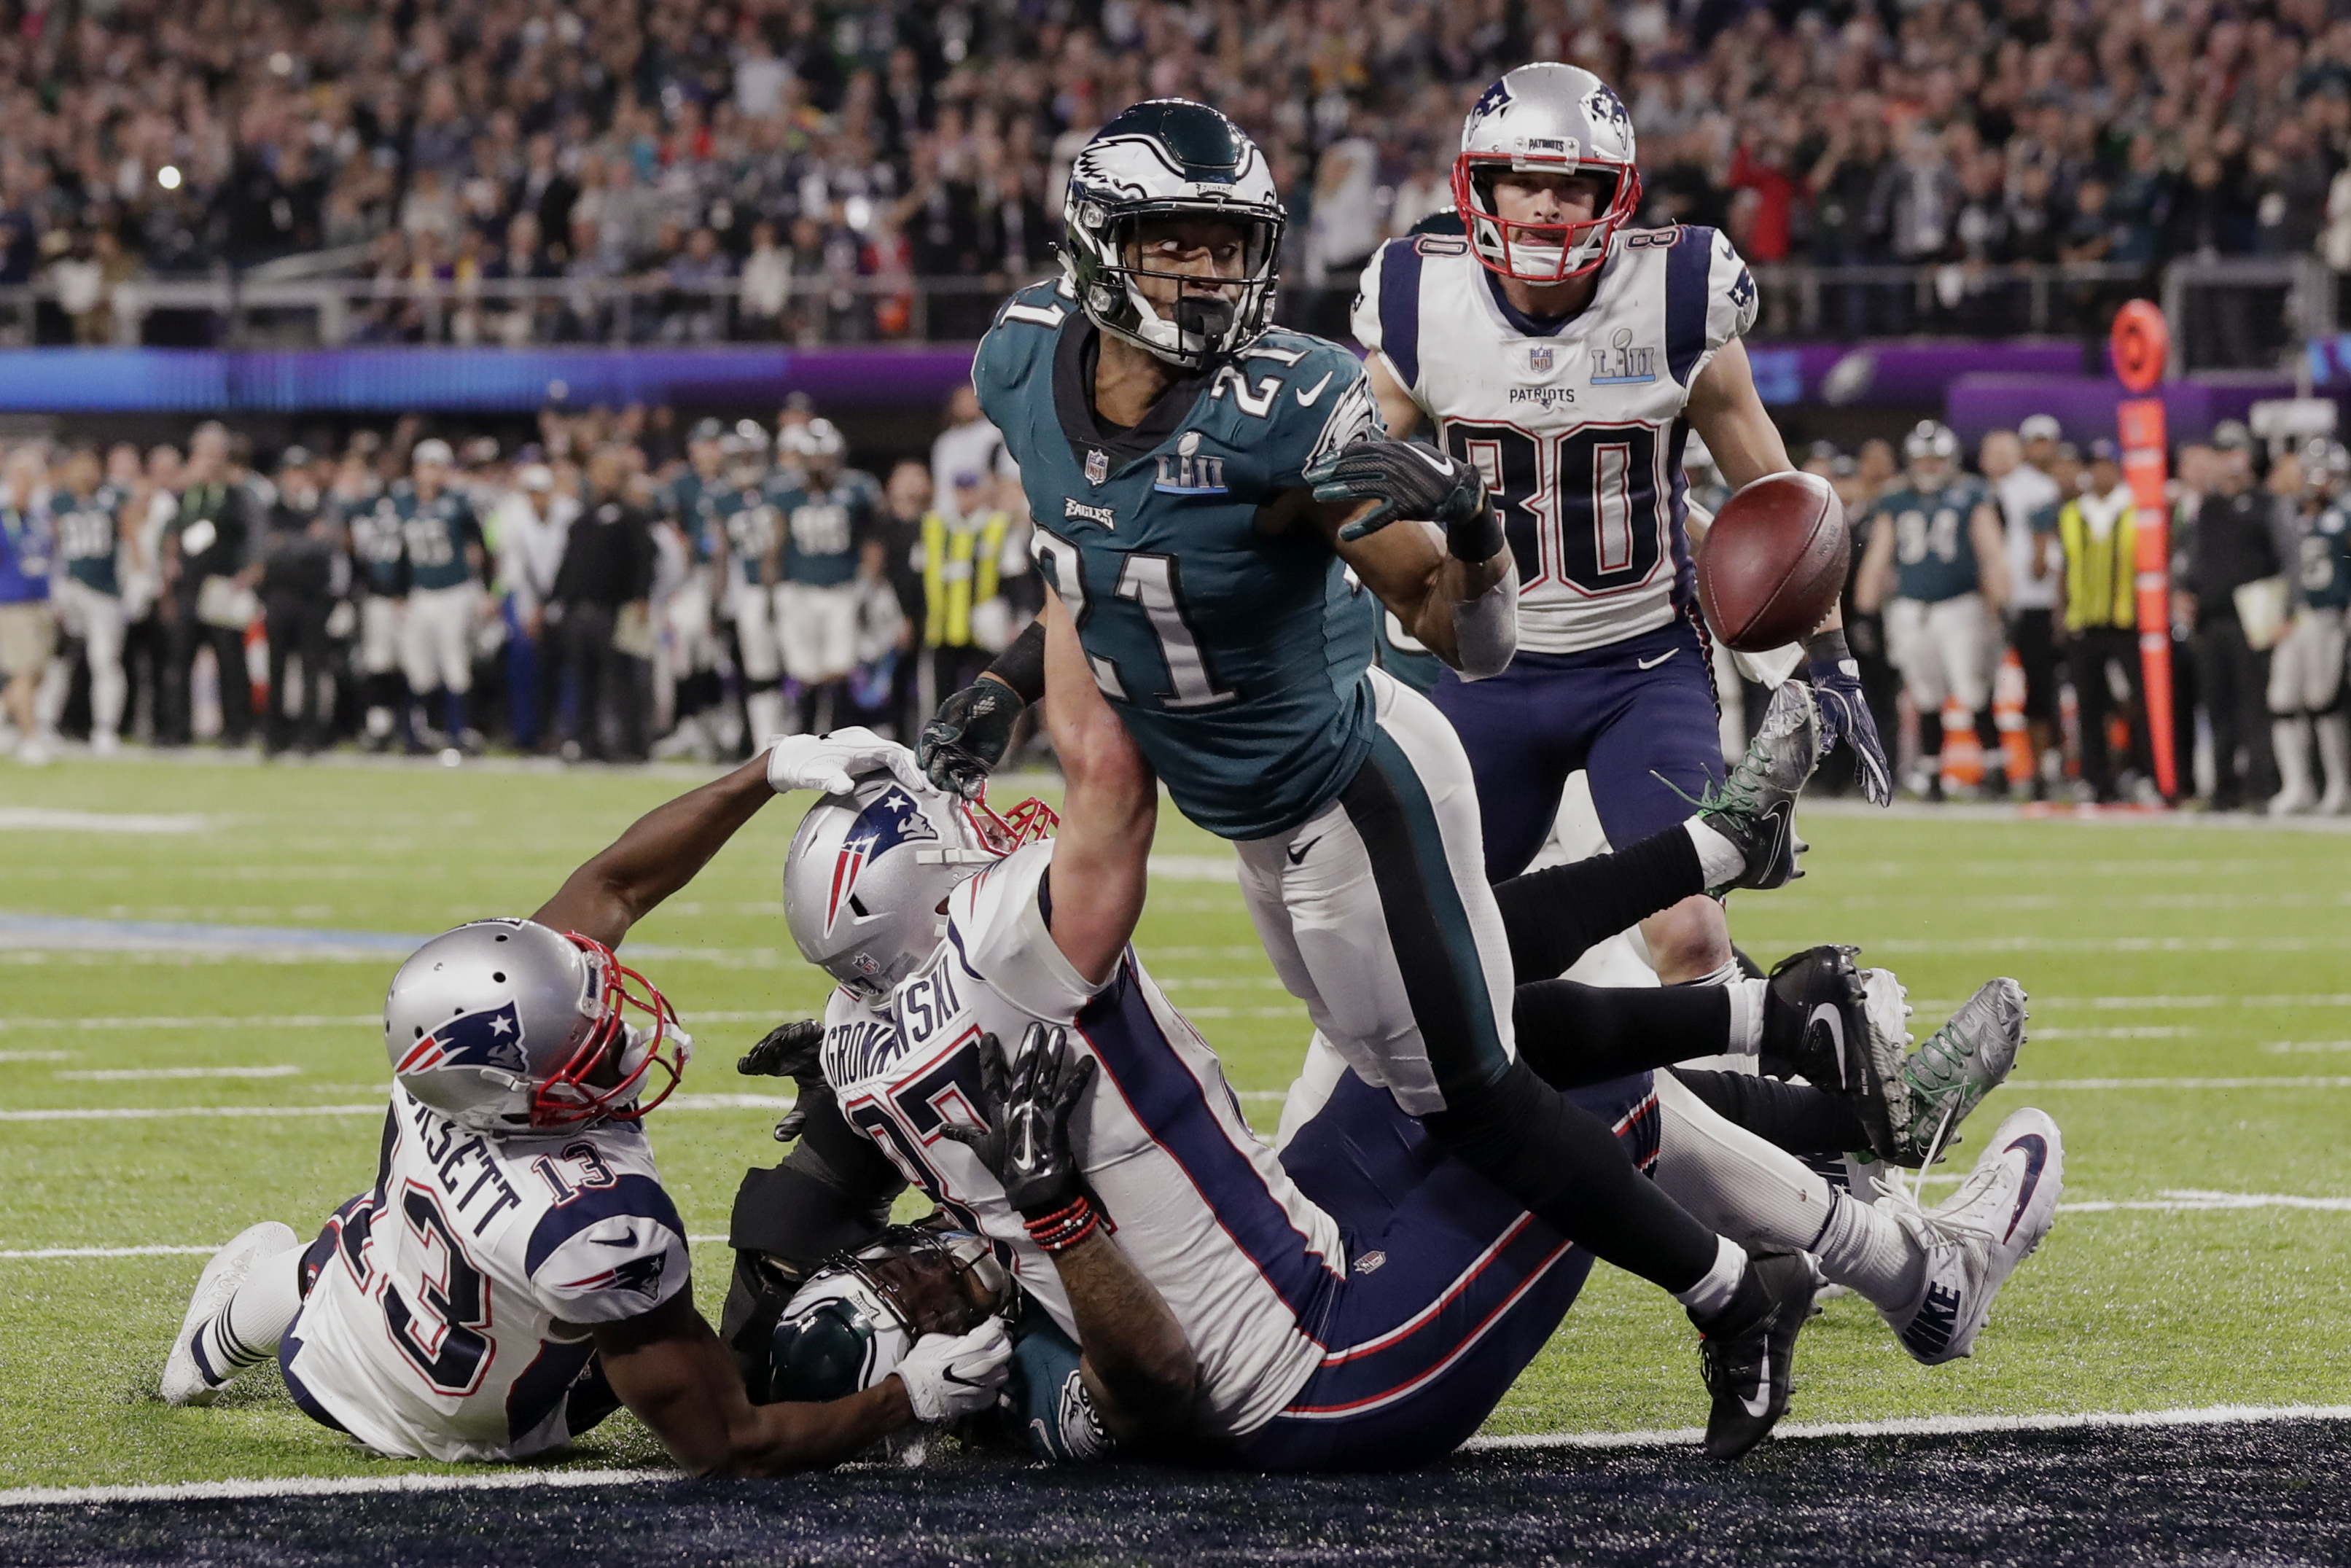 <div class='meta'><div class='origin-logo' data-origin='AP'></div><span class='caption-text' data-credit='AP Photo/Tony Gutierrez'>Philadelphia Eagles cornerback Patrick Robinson (21) looks at the loose ball, during the second half of the NFL Super Bowl 52 football game against the New England Patriots.</span></div>